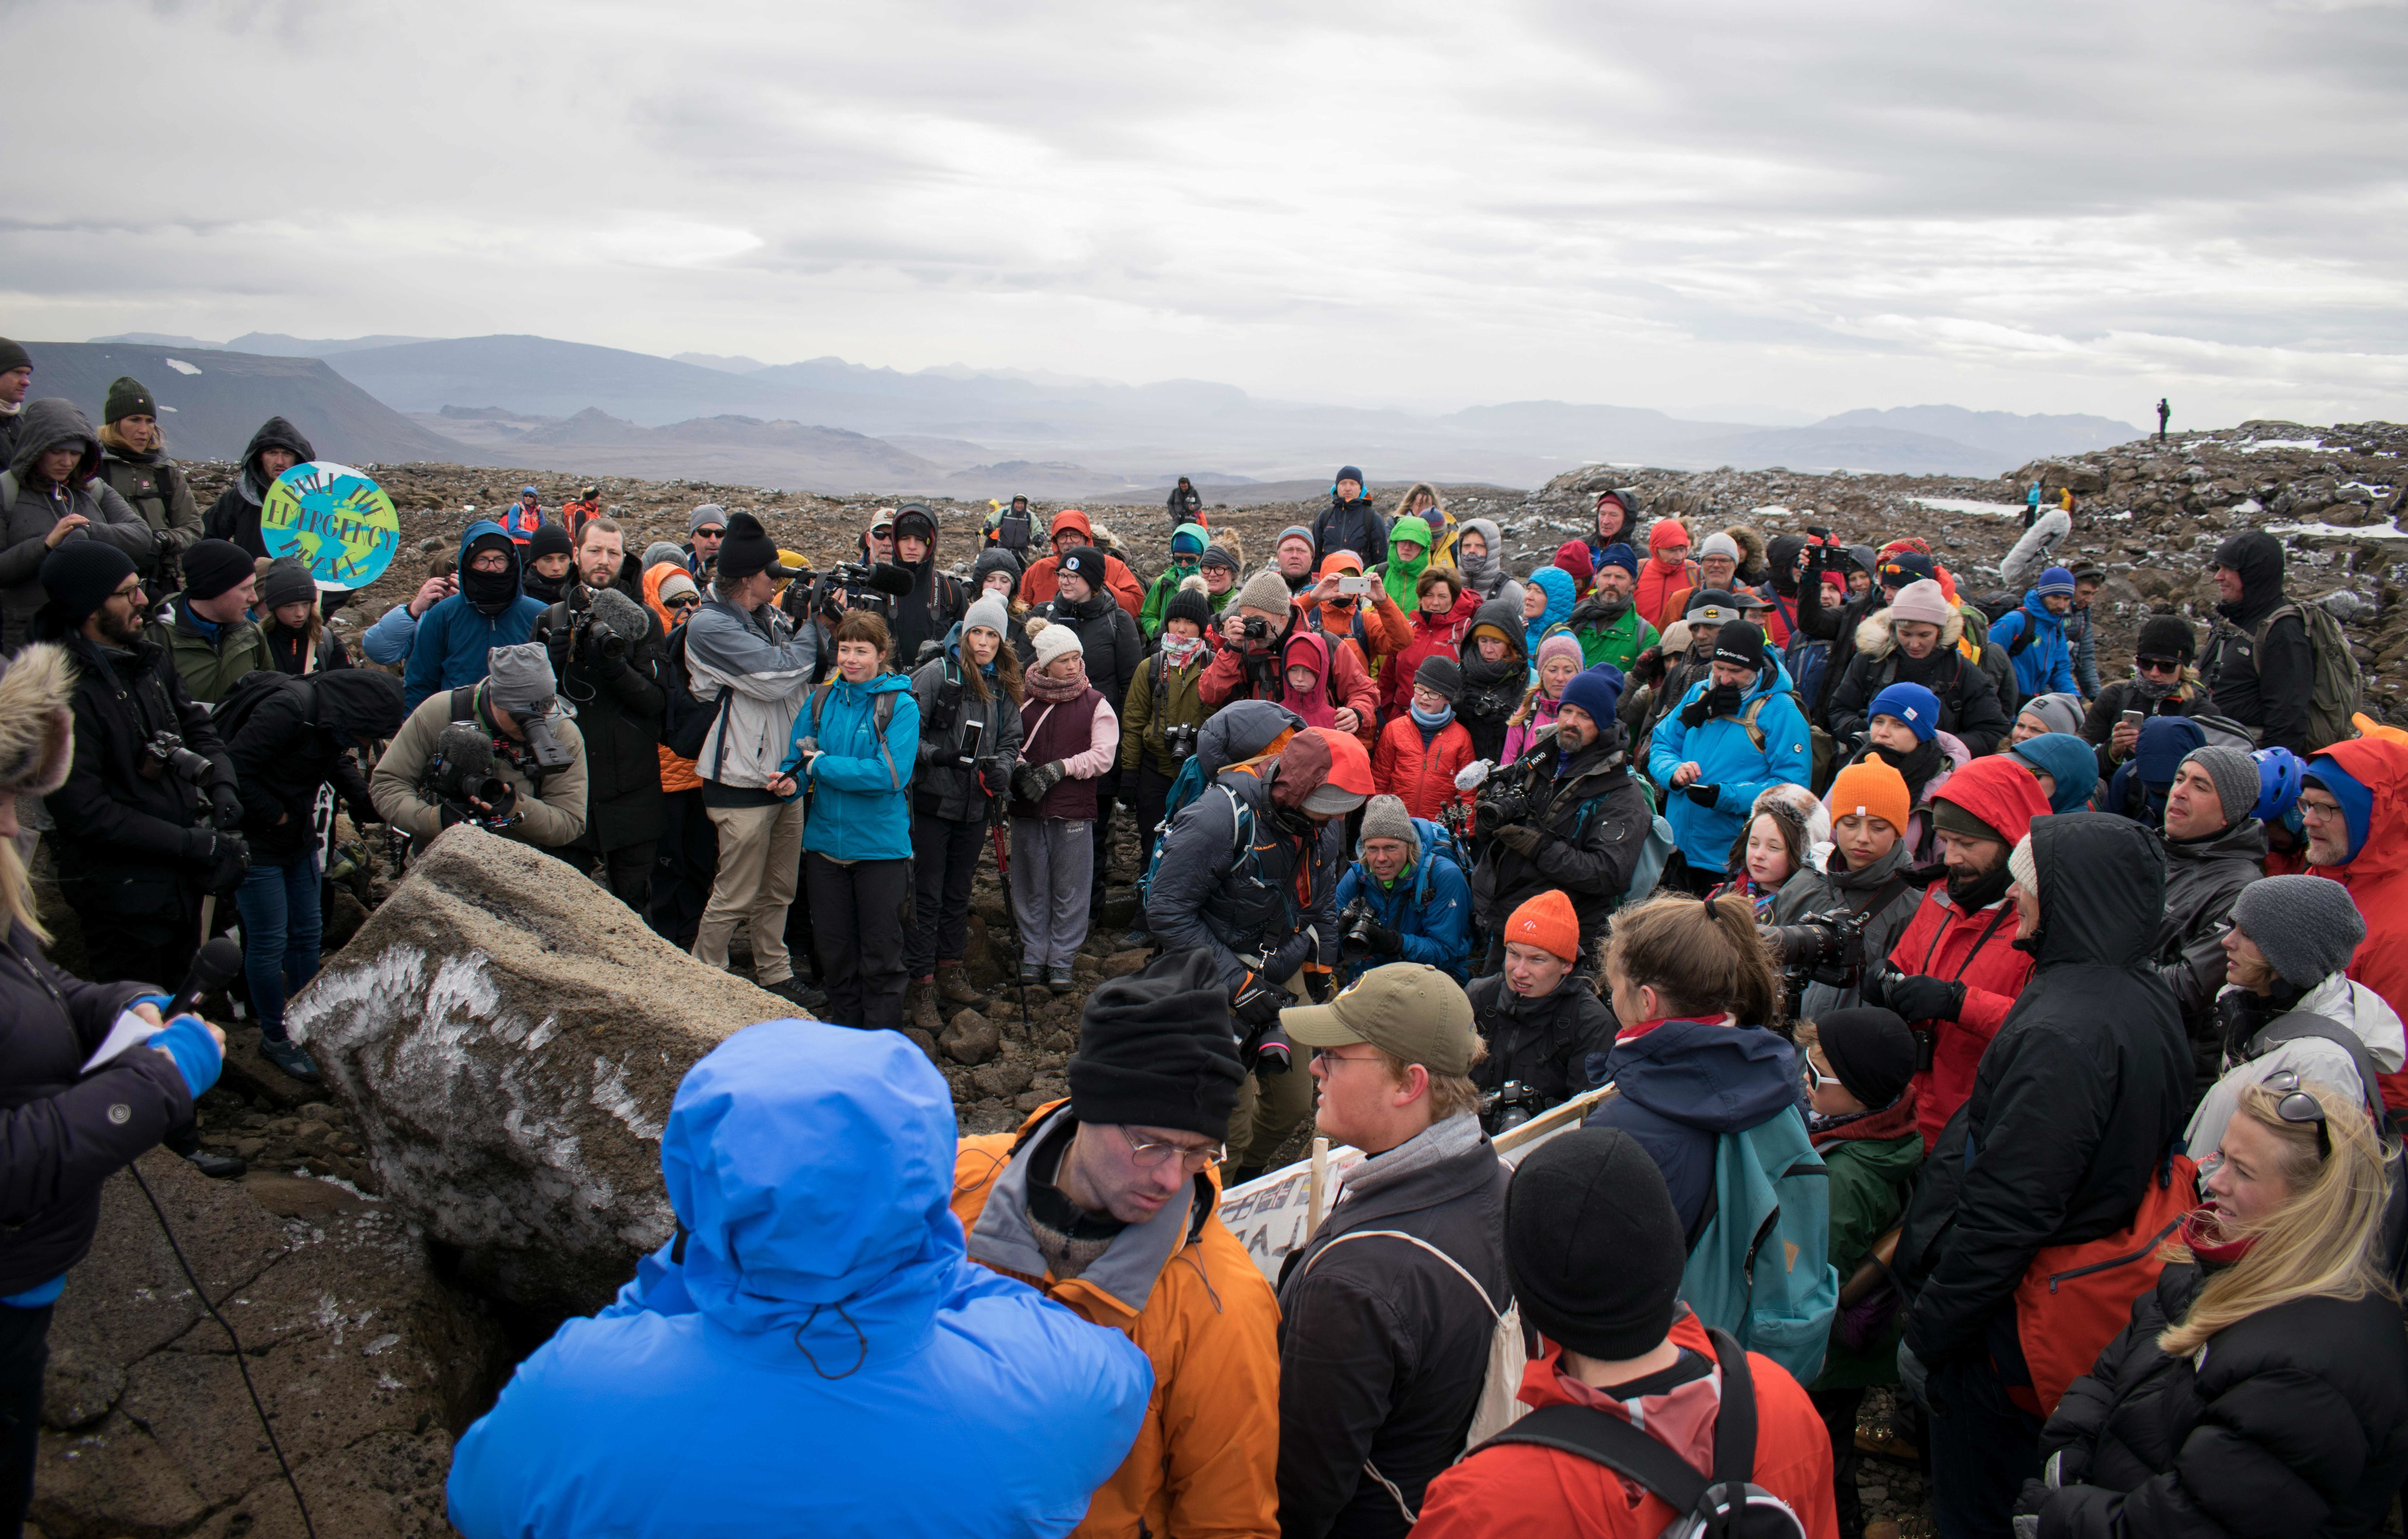 A monument is unveiled at the site of Okjokull, Iceland's first glacier lost to climate change in the west of Iceland on August 18, 2019. (Photo by Jeremie RICHARD / AFP) (Photo credit should read JEREMIE RICHARD/AFP/Getty Images)